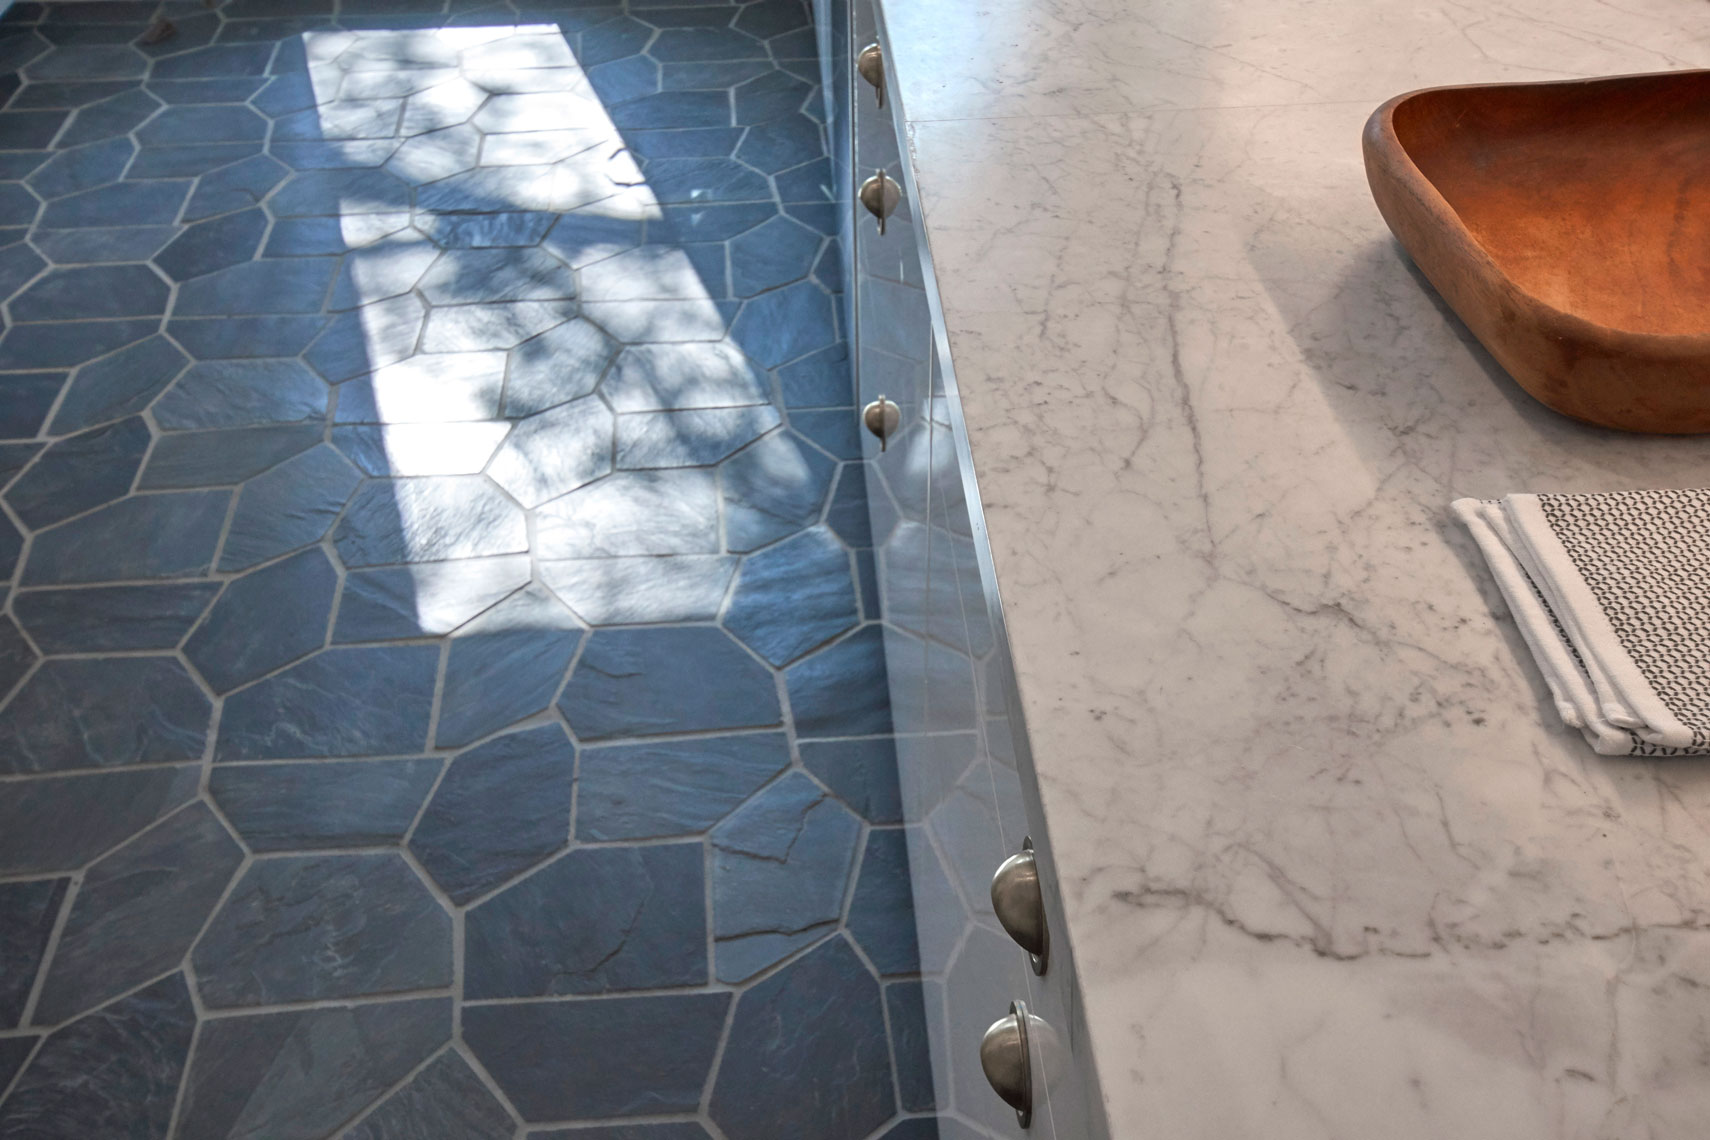 Kitchen-slate-floor-and-marble-counter-detail-by-Los-Angeles-architecture photographer.